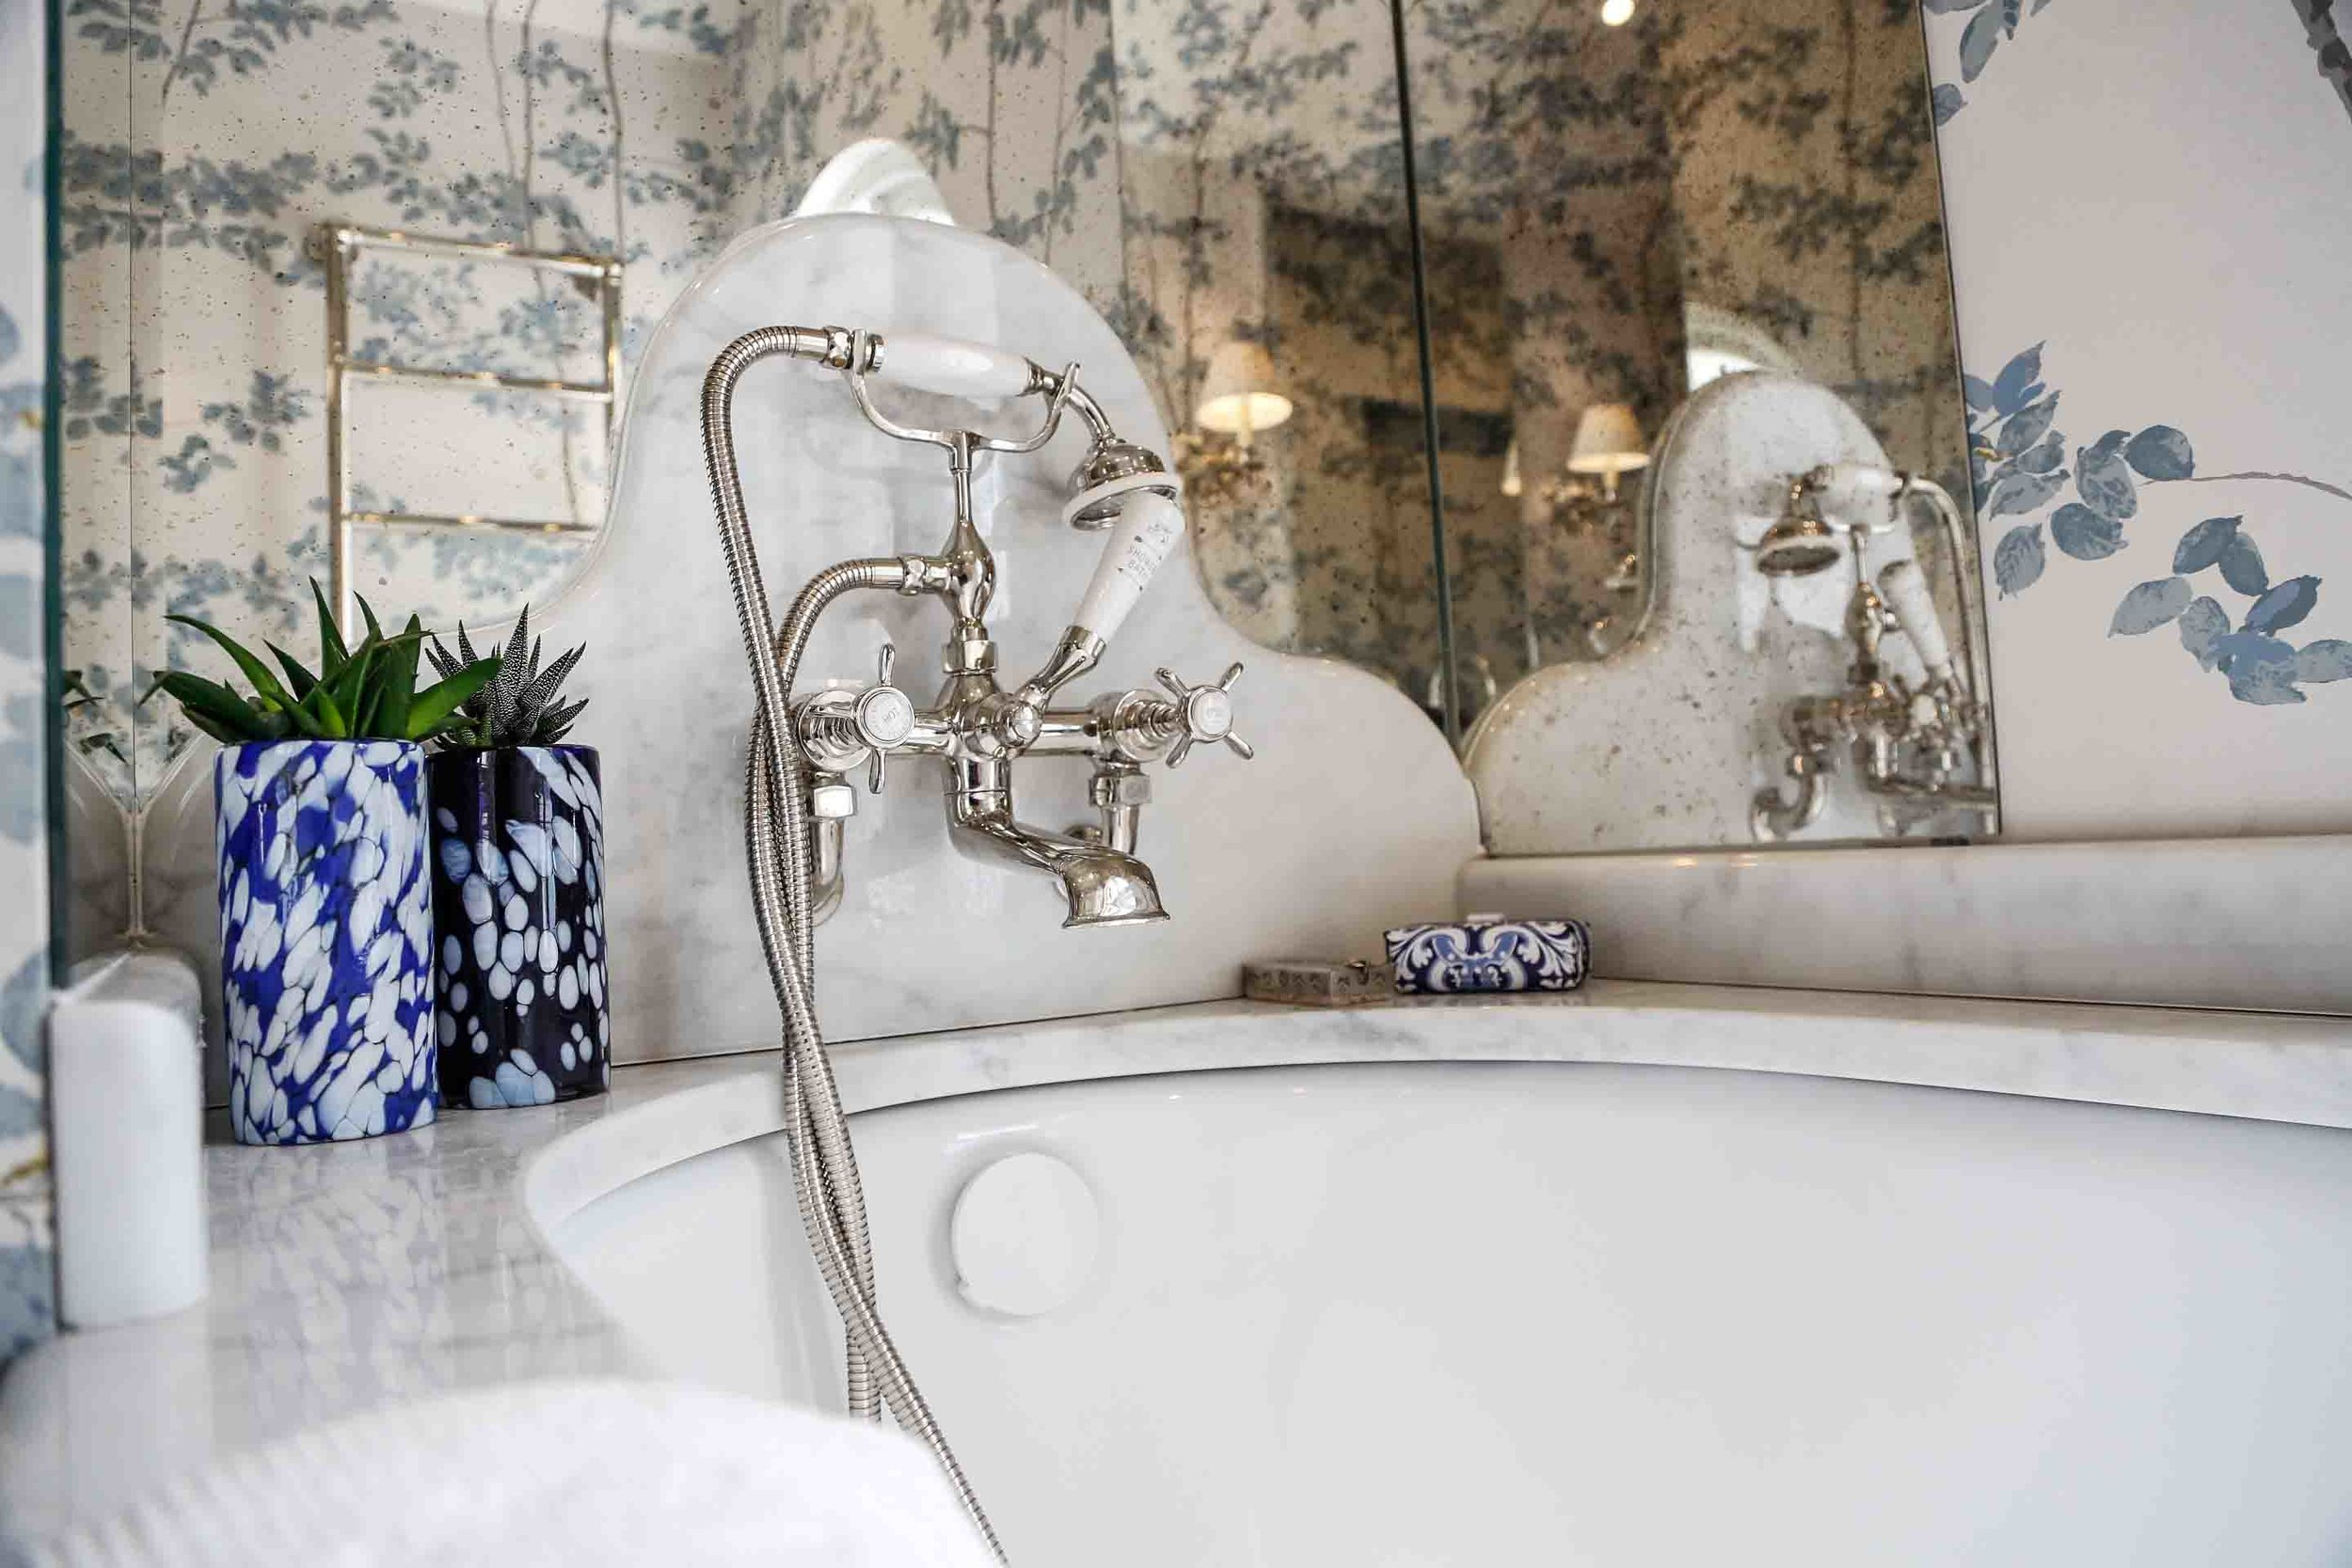 Bathroom - Liven up your bathroom…